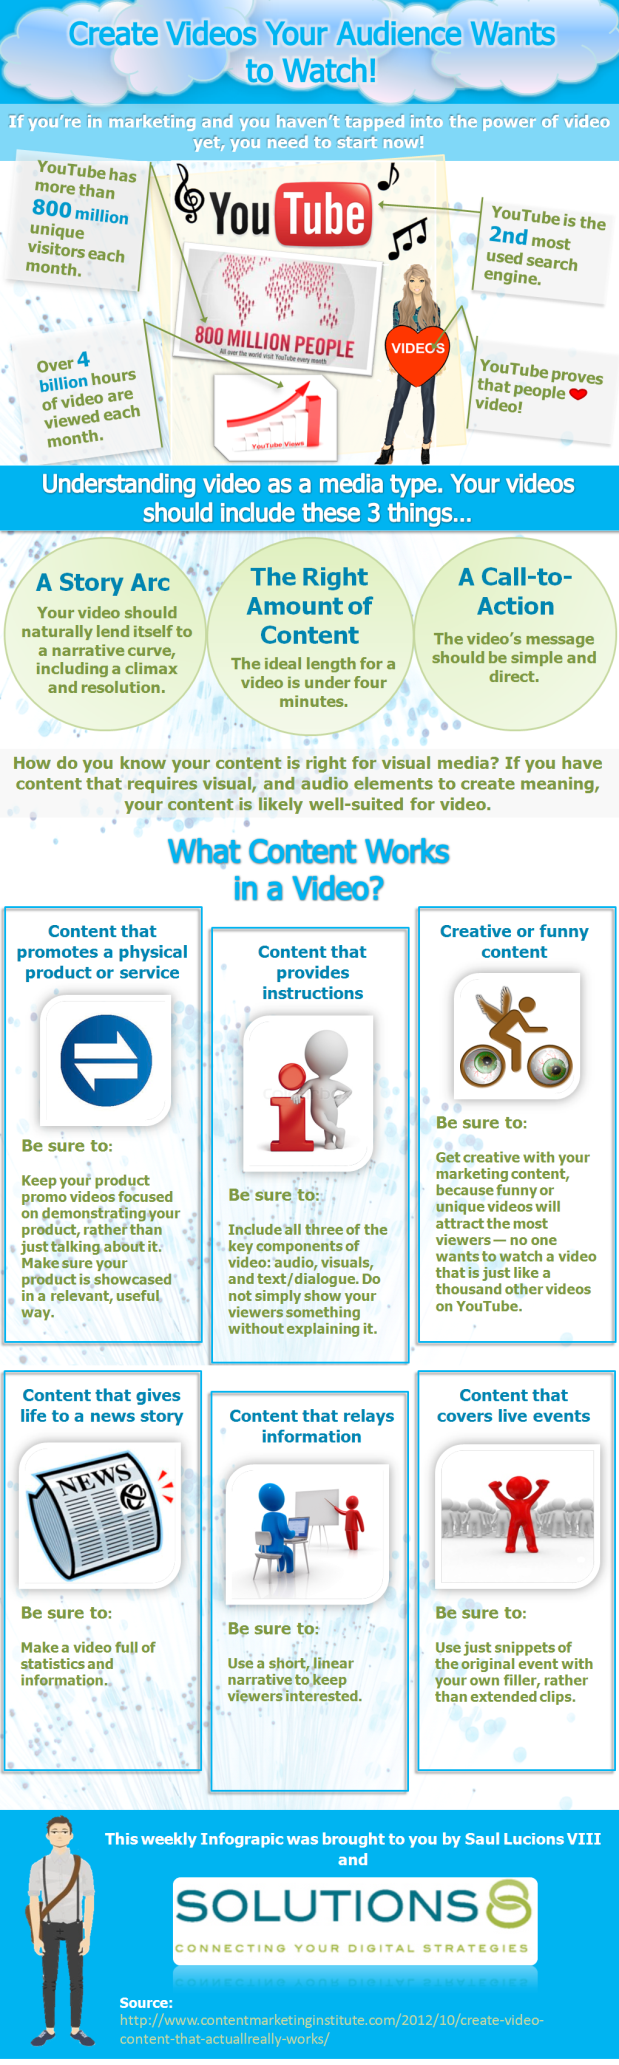 create-videos-your-audience-wants-to-watch